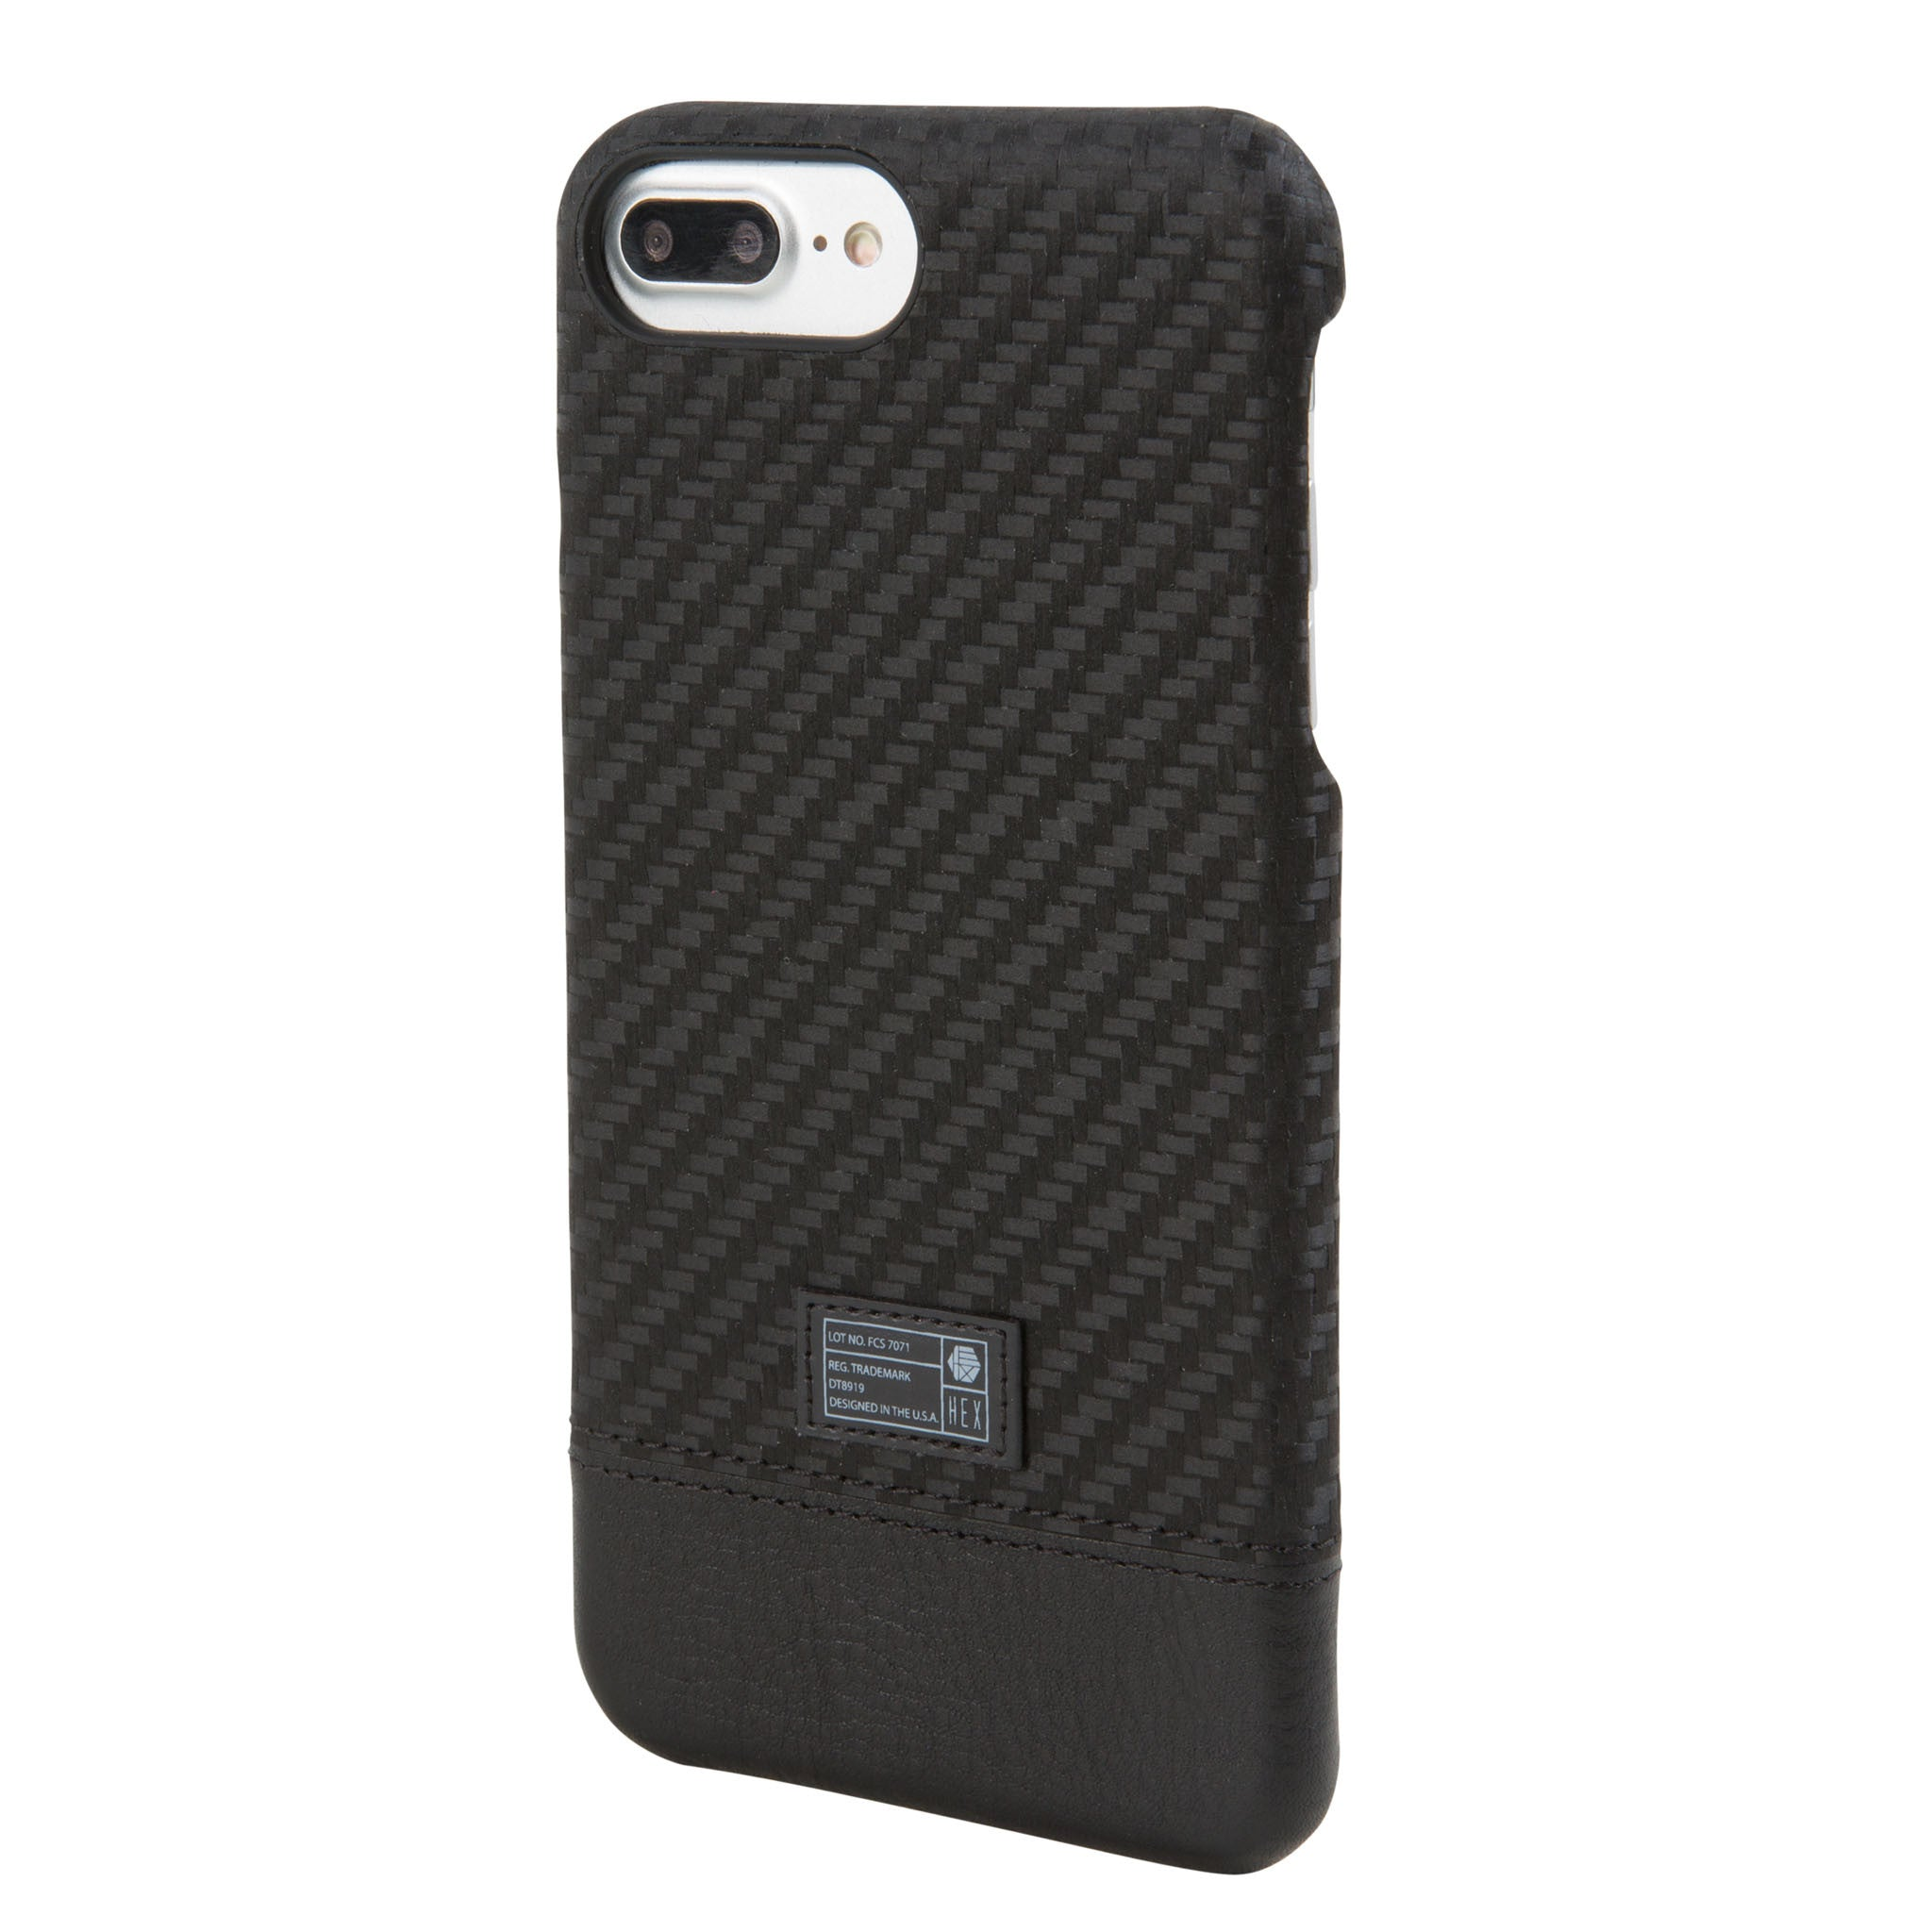 Carbon Fiber Iphone Case >> Black Carbon Fiber Focus Case For Iphone 7 8 Plus